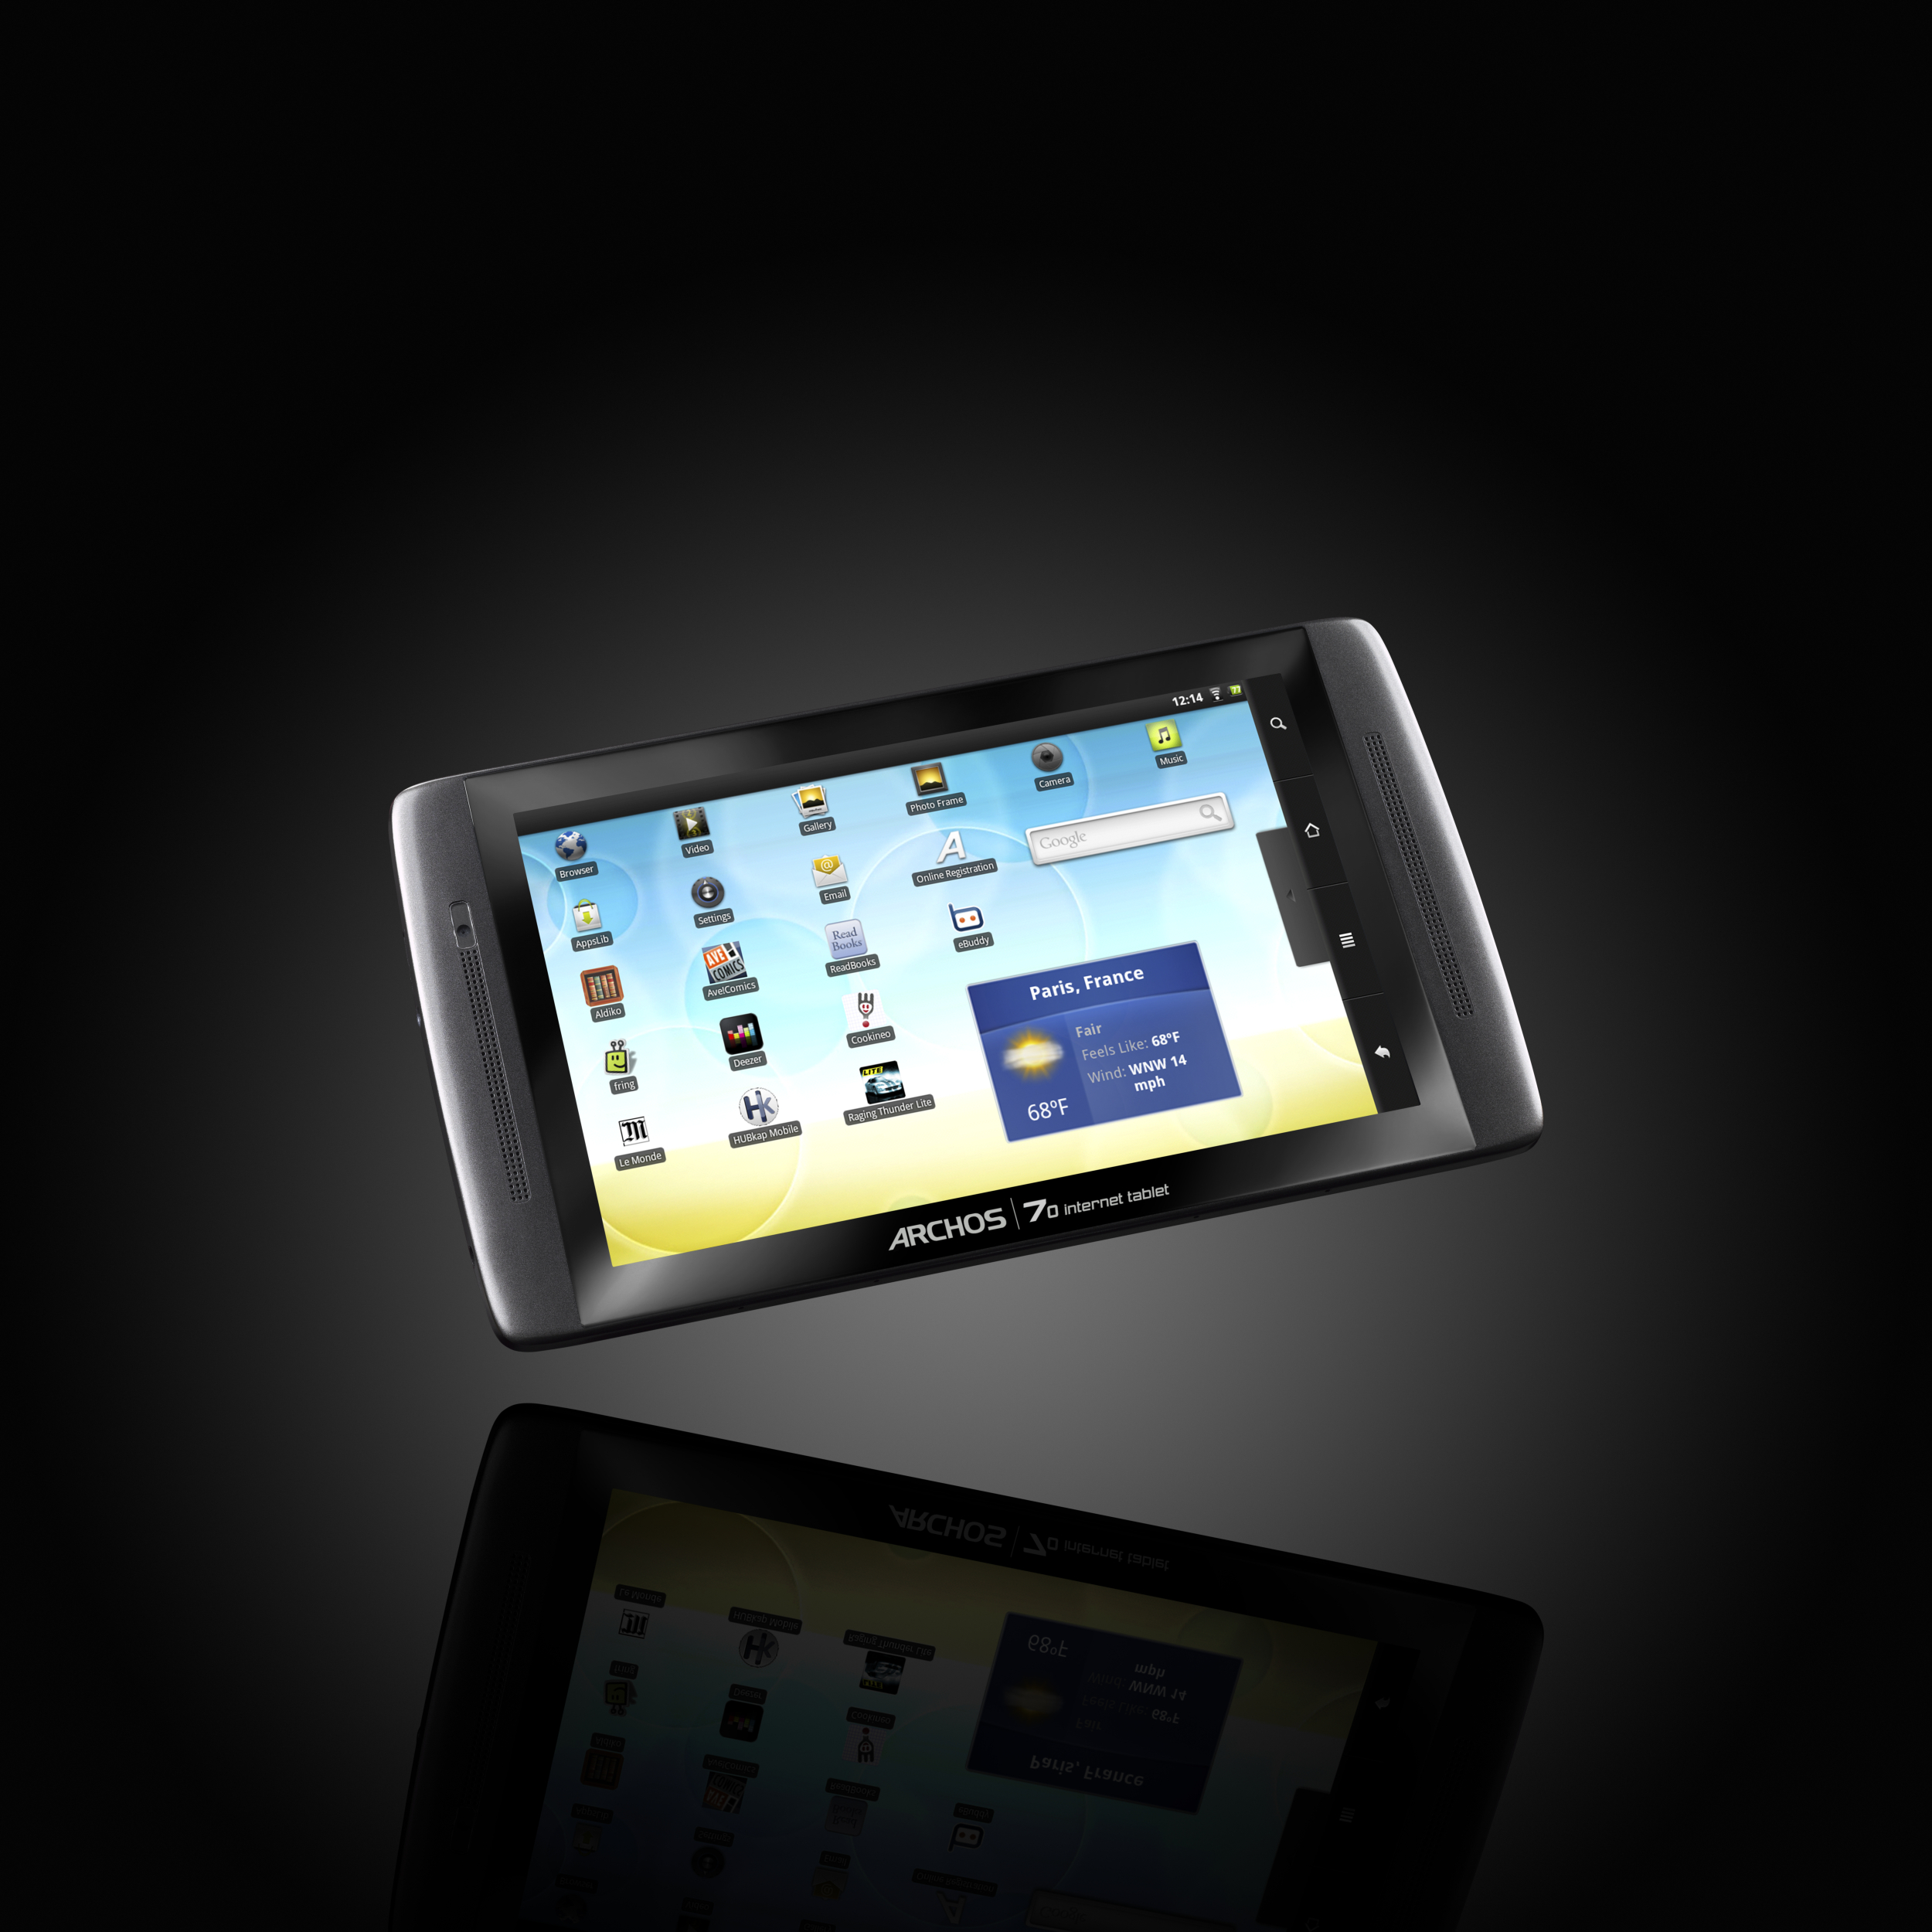 View hires photo of Archos 70 Internet tablet touch screen against ambient  background (2.28MB